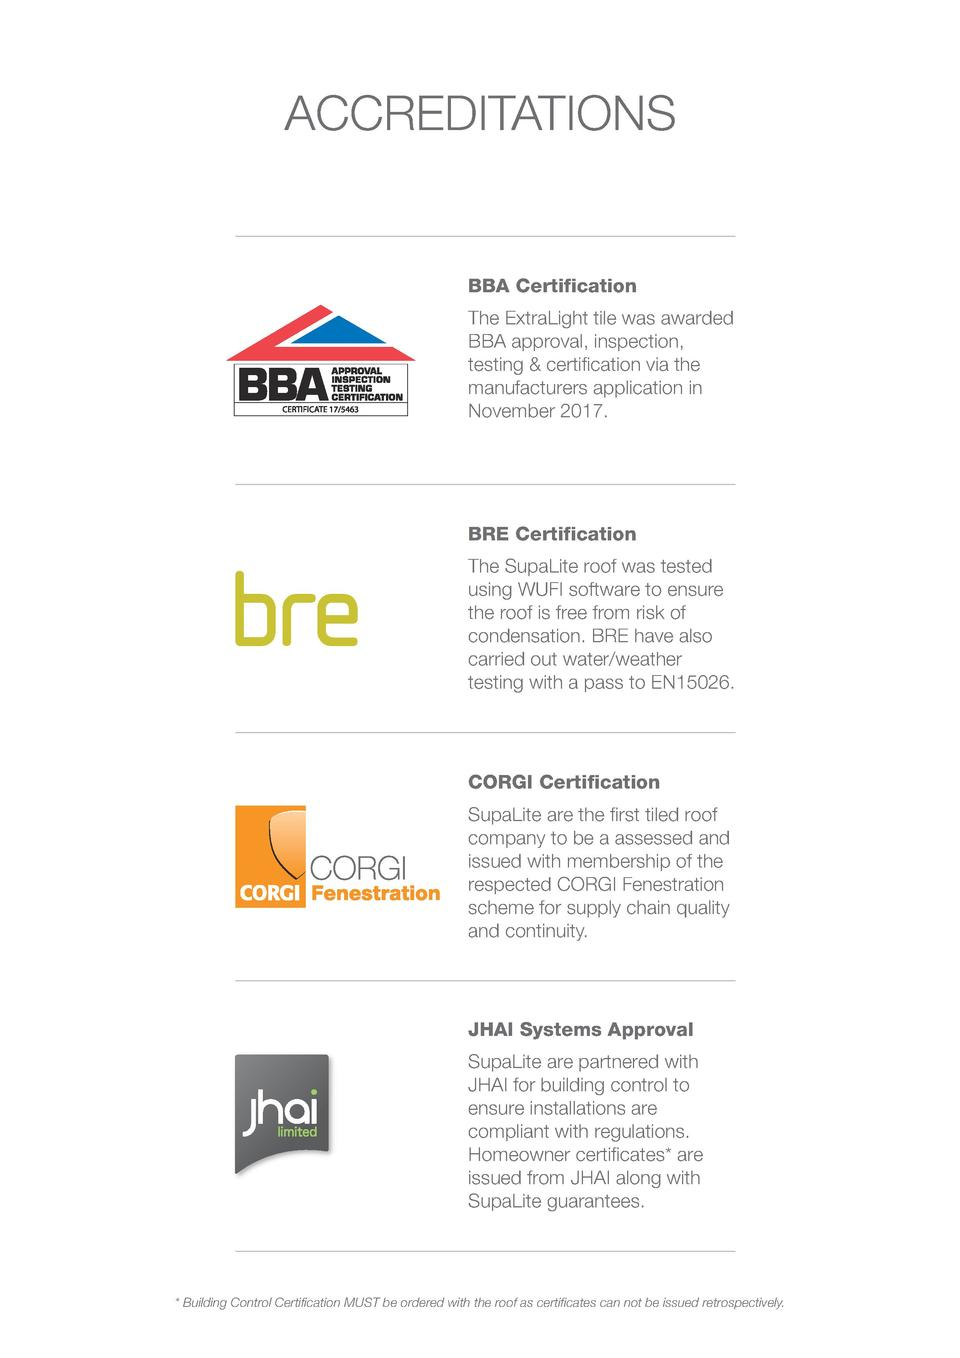 ACCREDITATIONS  BBA Certification The ExtraLight tile was awarded BBA approval, inspection, testing   certification via th...